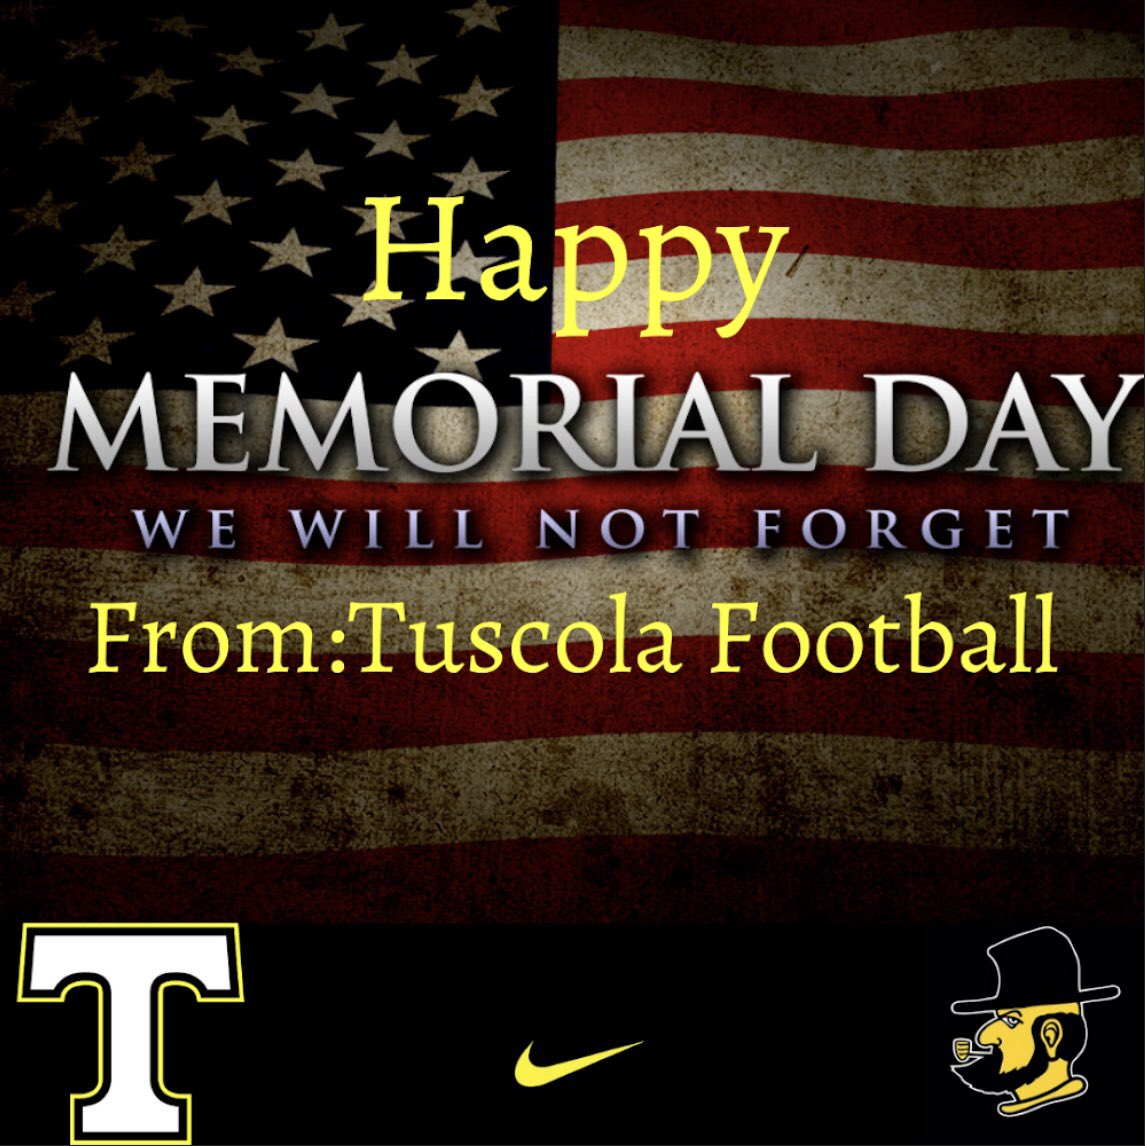 """Greater love hath no man than this, that a man lay down his life for his friends."" John 15:13   Happy Memorial Day from the Tuscola Mountaineer Football Family! We are thankful for those who lay down there lives daily so that we may be free!   #TuscolaFootball  pic.twitter.com/YK8mTcqoOa"